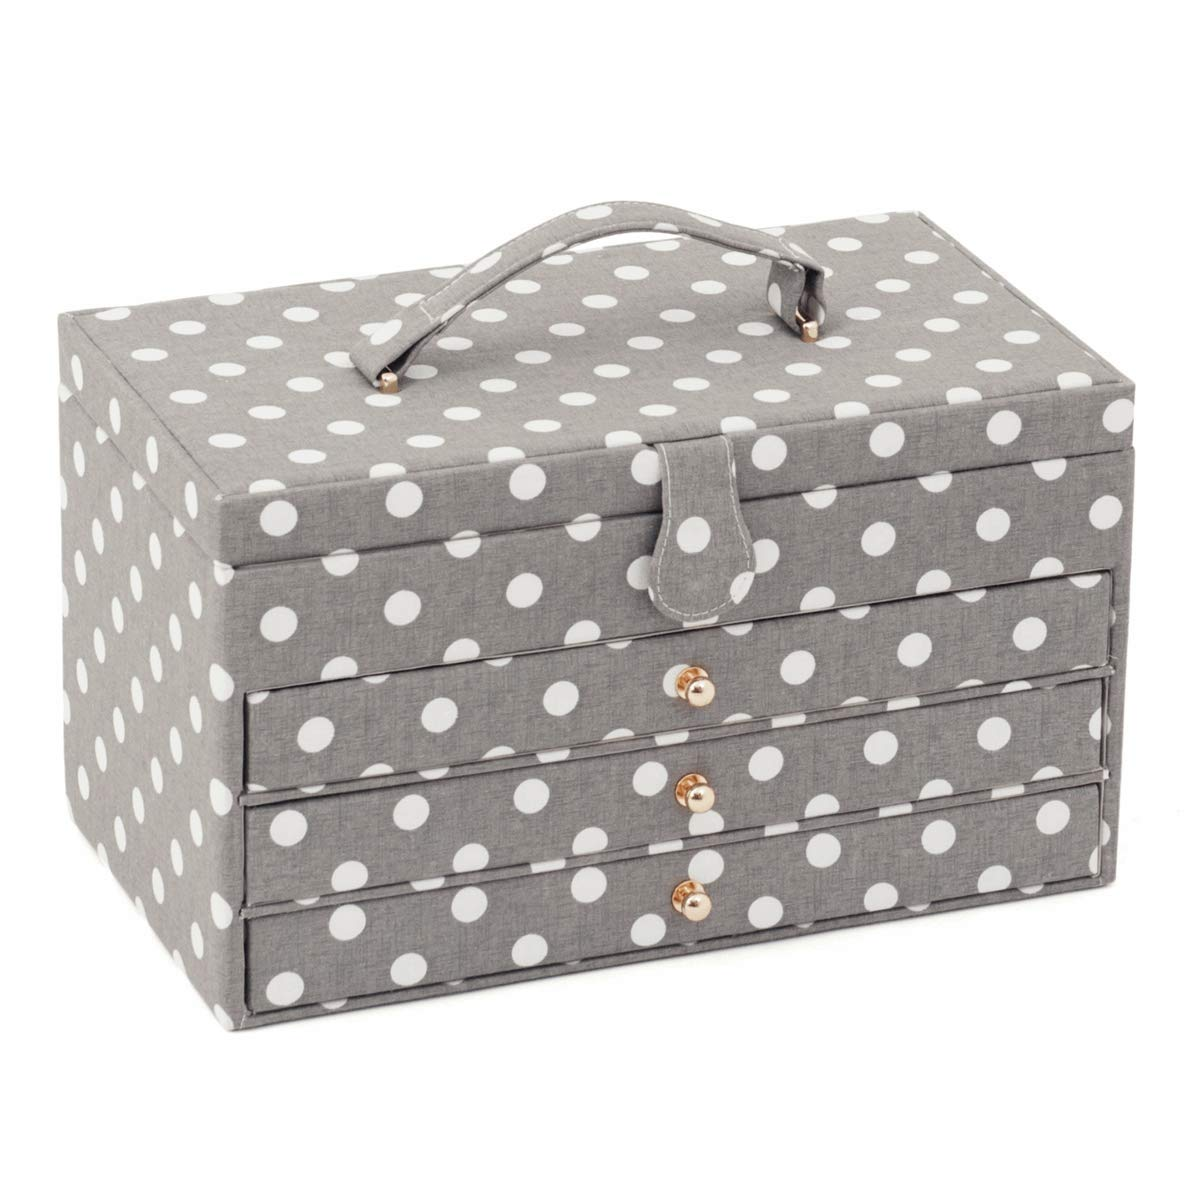 Hobby Gift Extra Large Sewing Box Grey Polka Dot Design - 3 Drawers Box Size: (D/W/H): 21 x 36 x 20cm by Hobby Gift